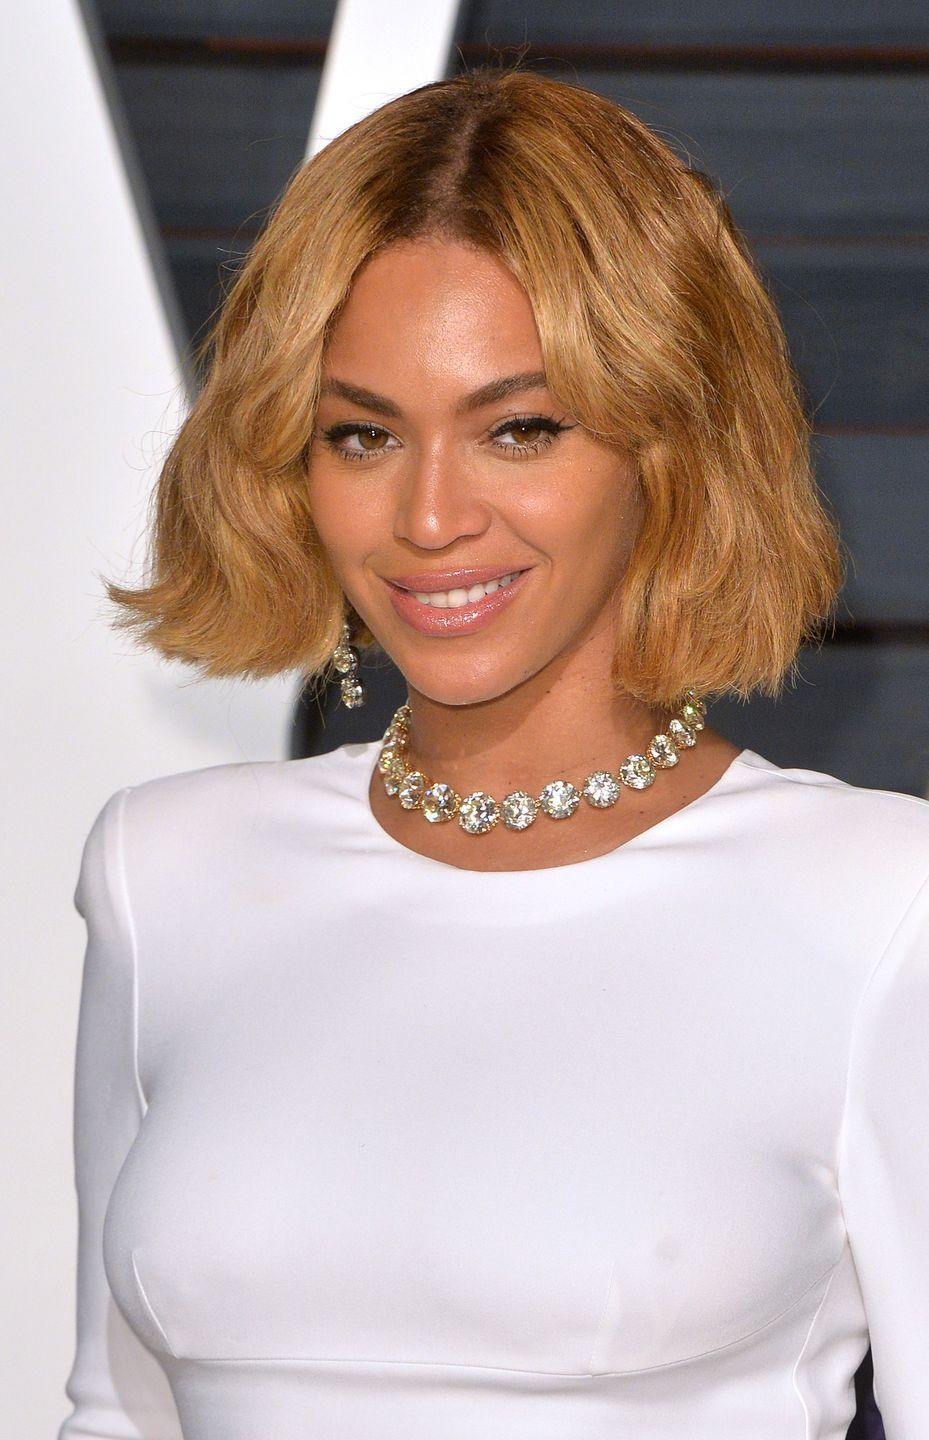 <p>Add texture to your bob by slightly teasing chunks of hair, mimicking the effortlessly chic look <strong>Beyoncé</strong> showed off.</p>